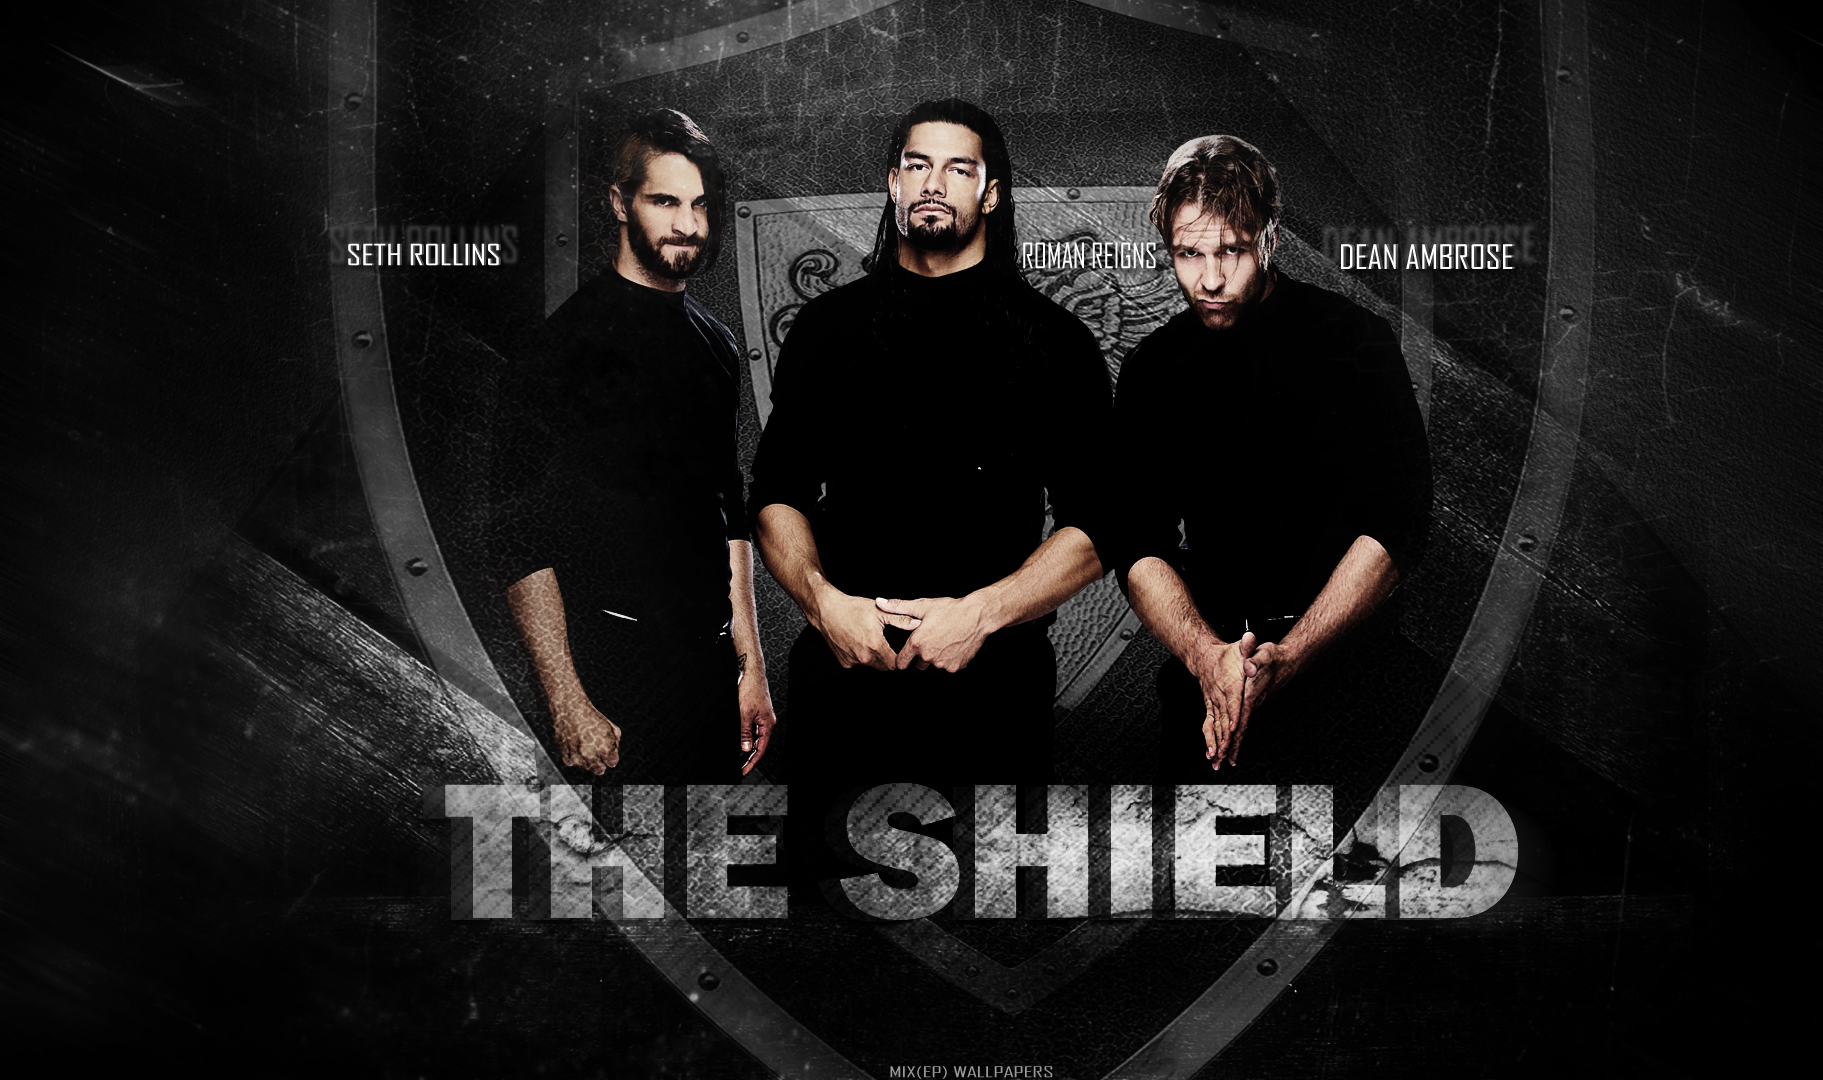 wwe-superstars-images-the-shield-the-shield-wwe-superstars-wallpaper-wp4210905